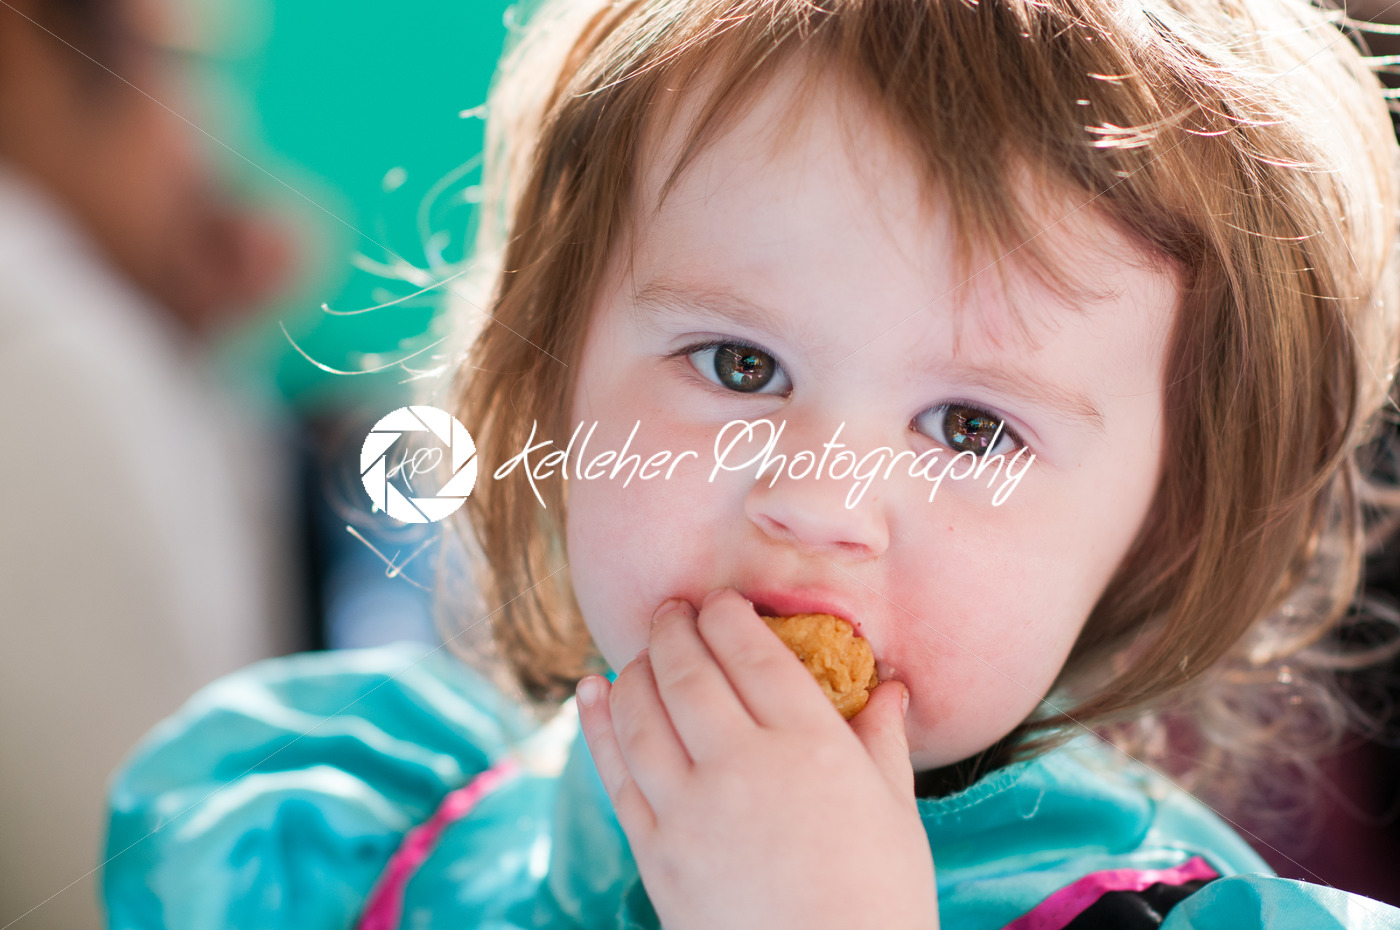 Close up Portrait of young girl eating - Kelleher Photography Store